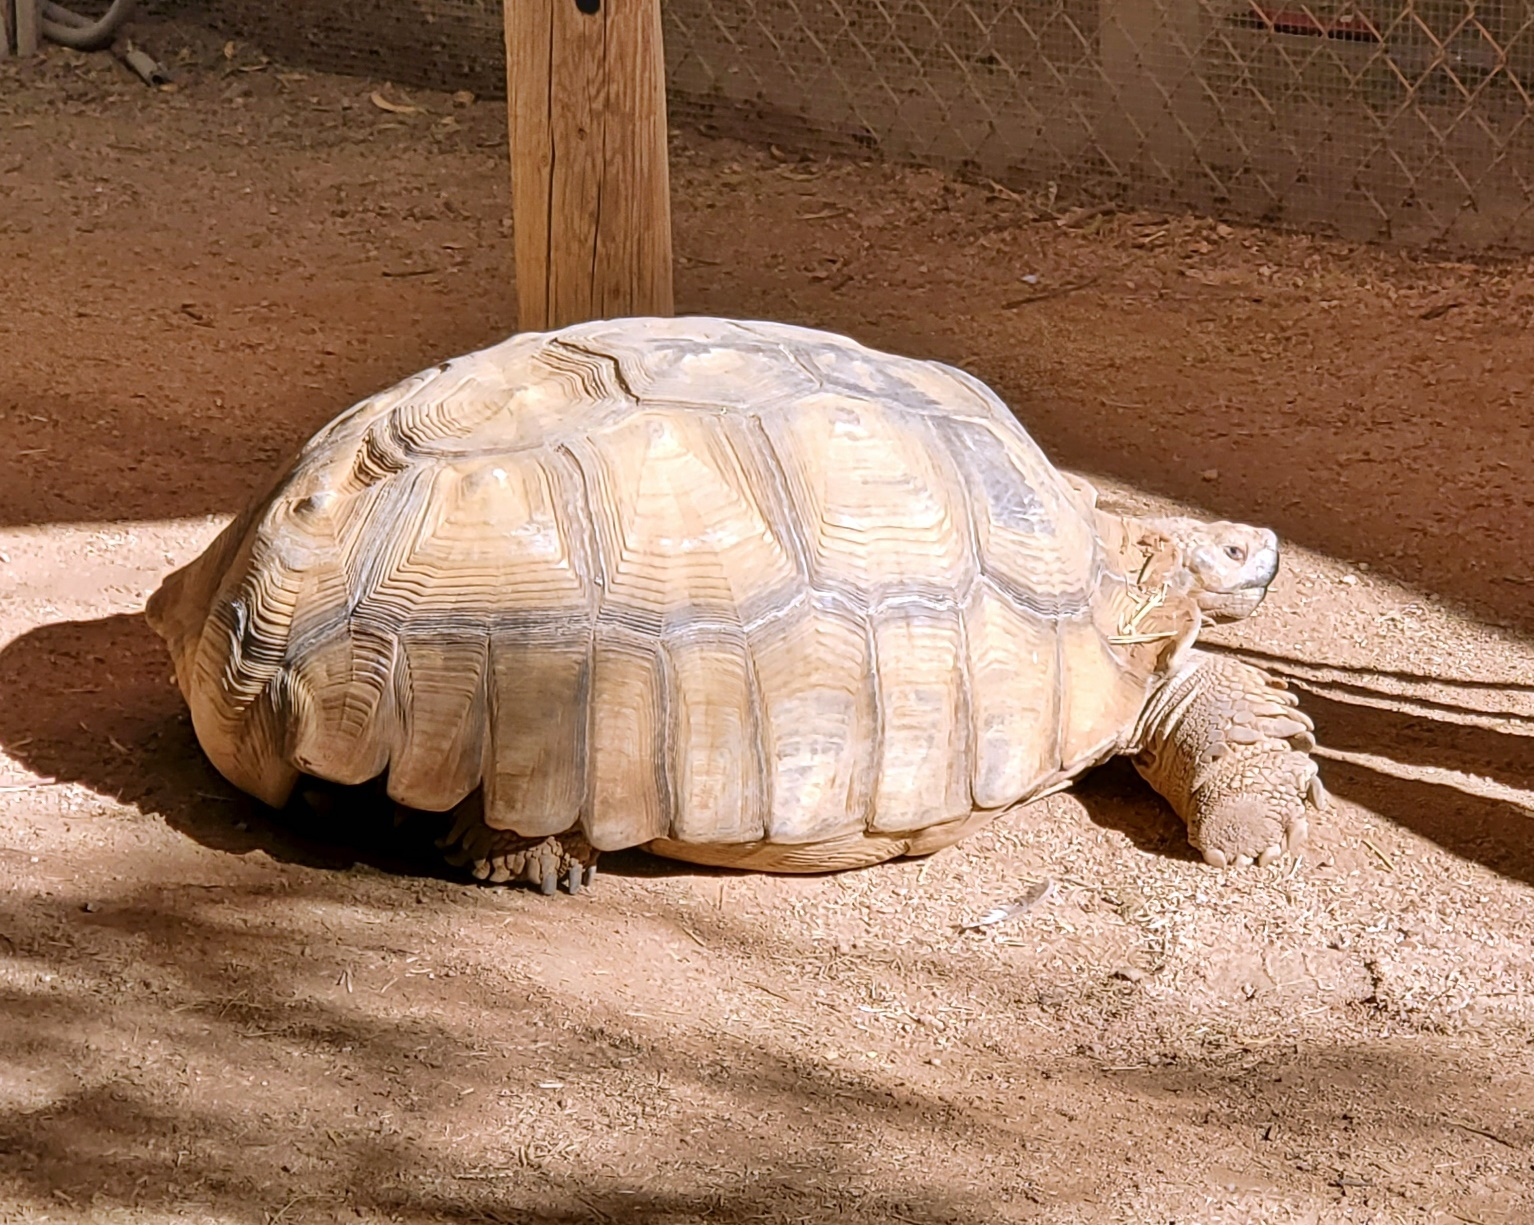 goliath the tortoise southwest wildlife center